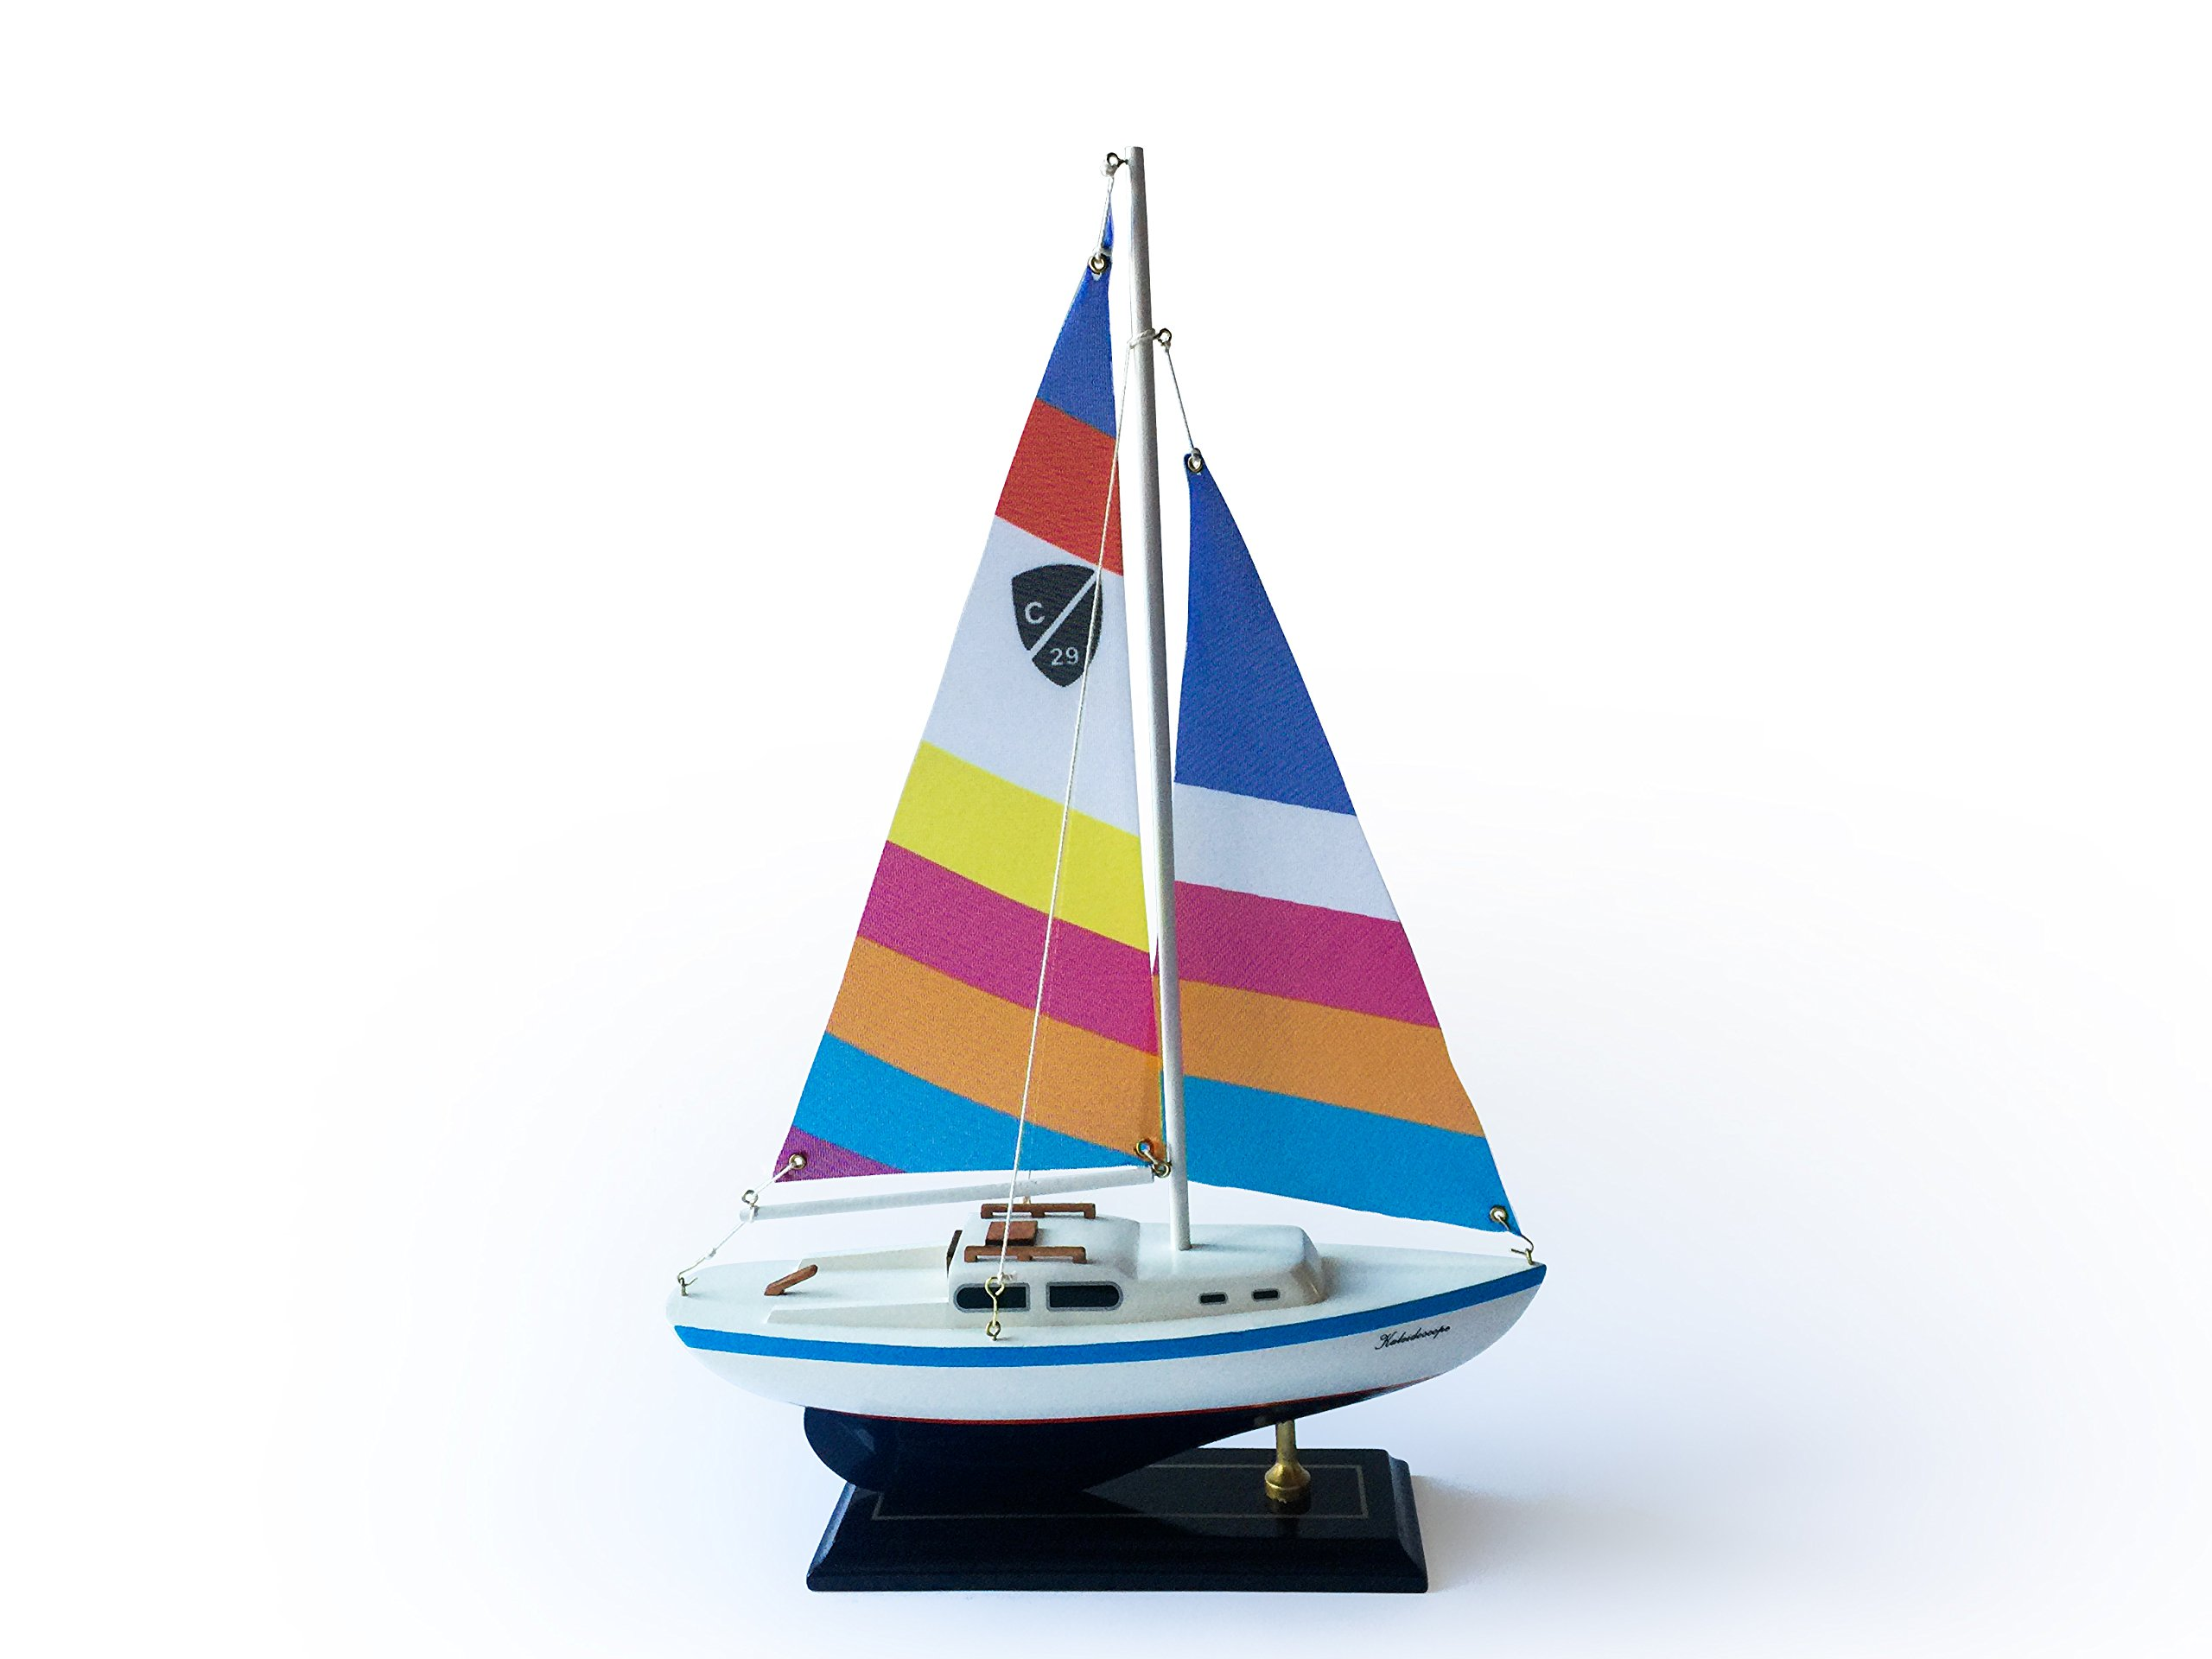 Columbia Wooden Nautical Sailboat Ship Model 16''-2